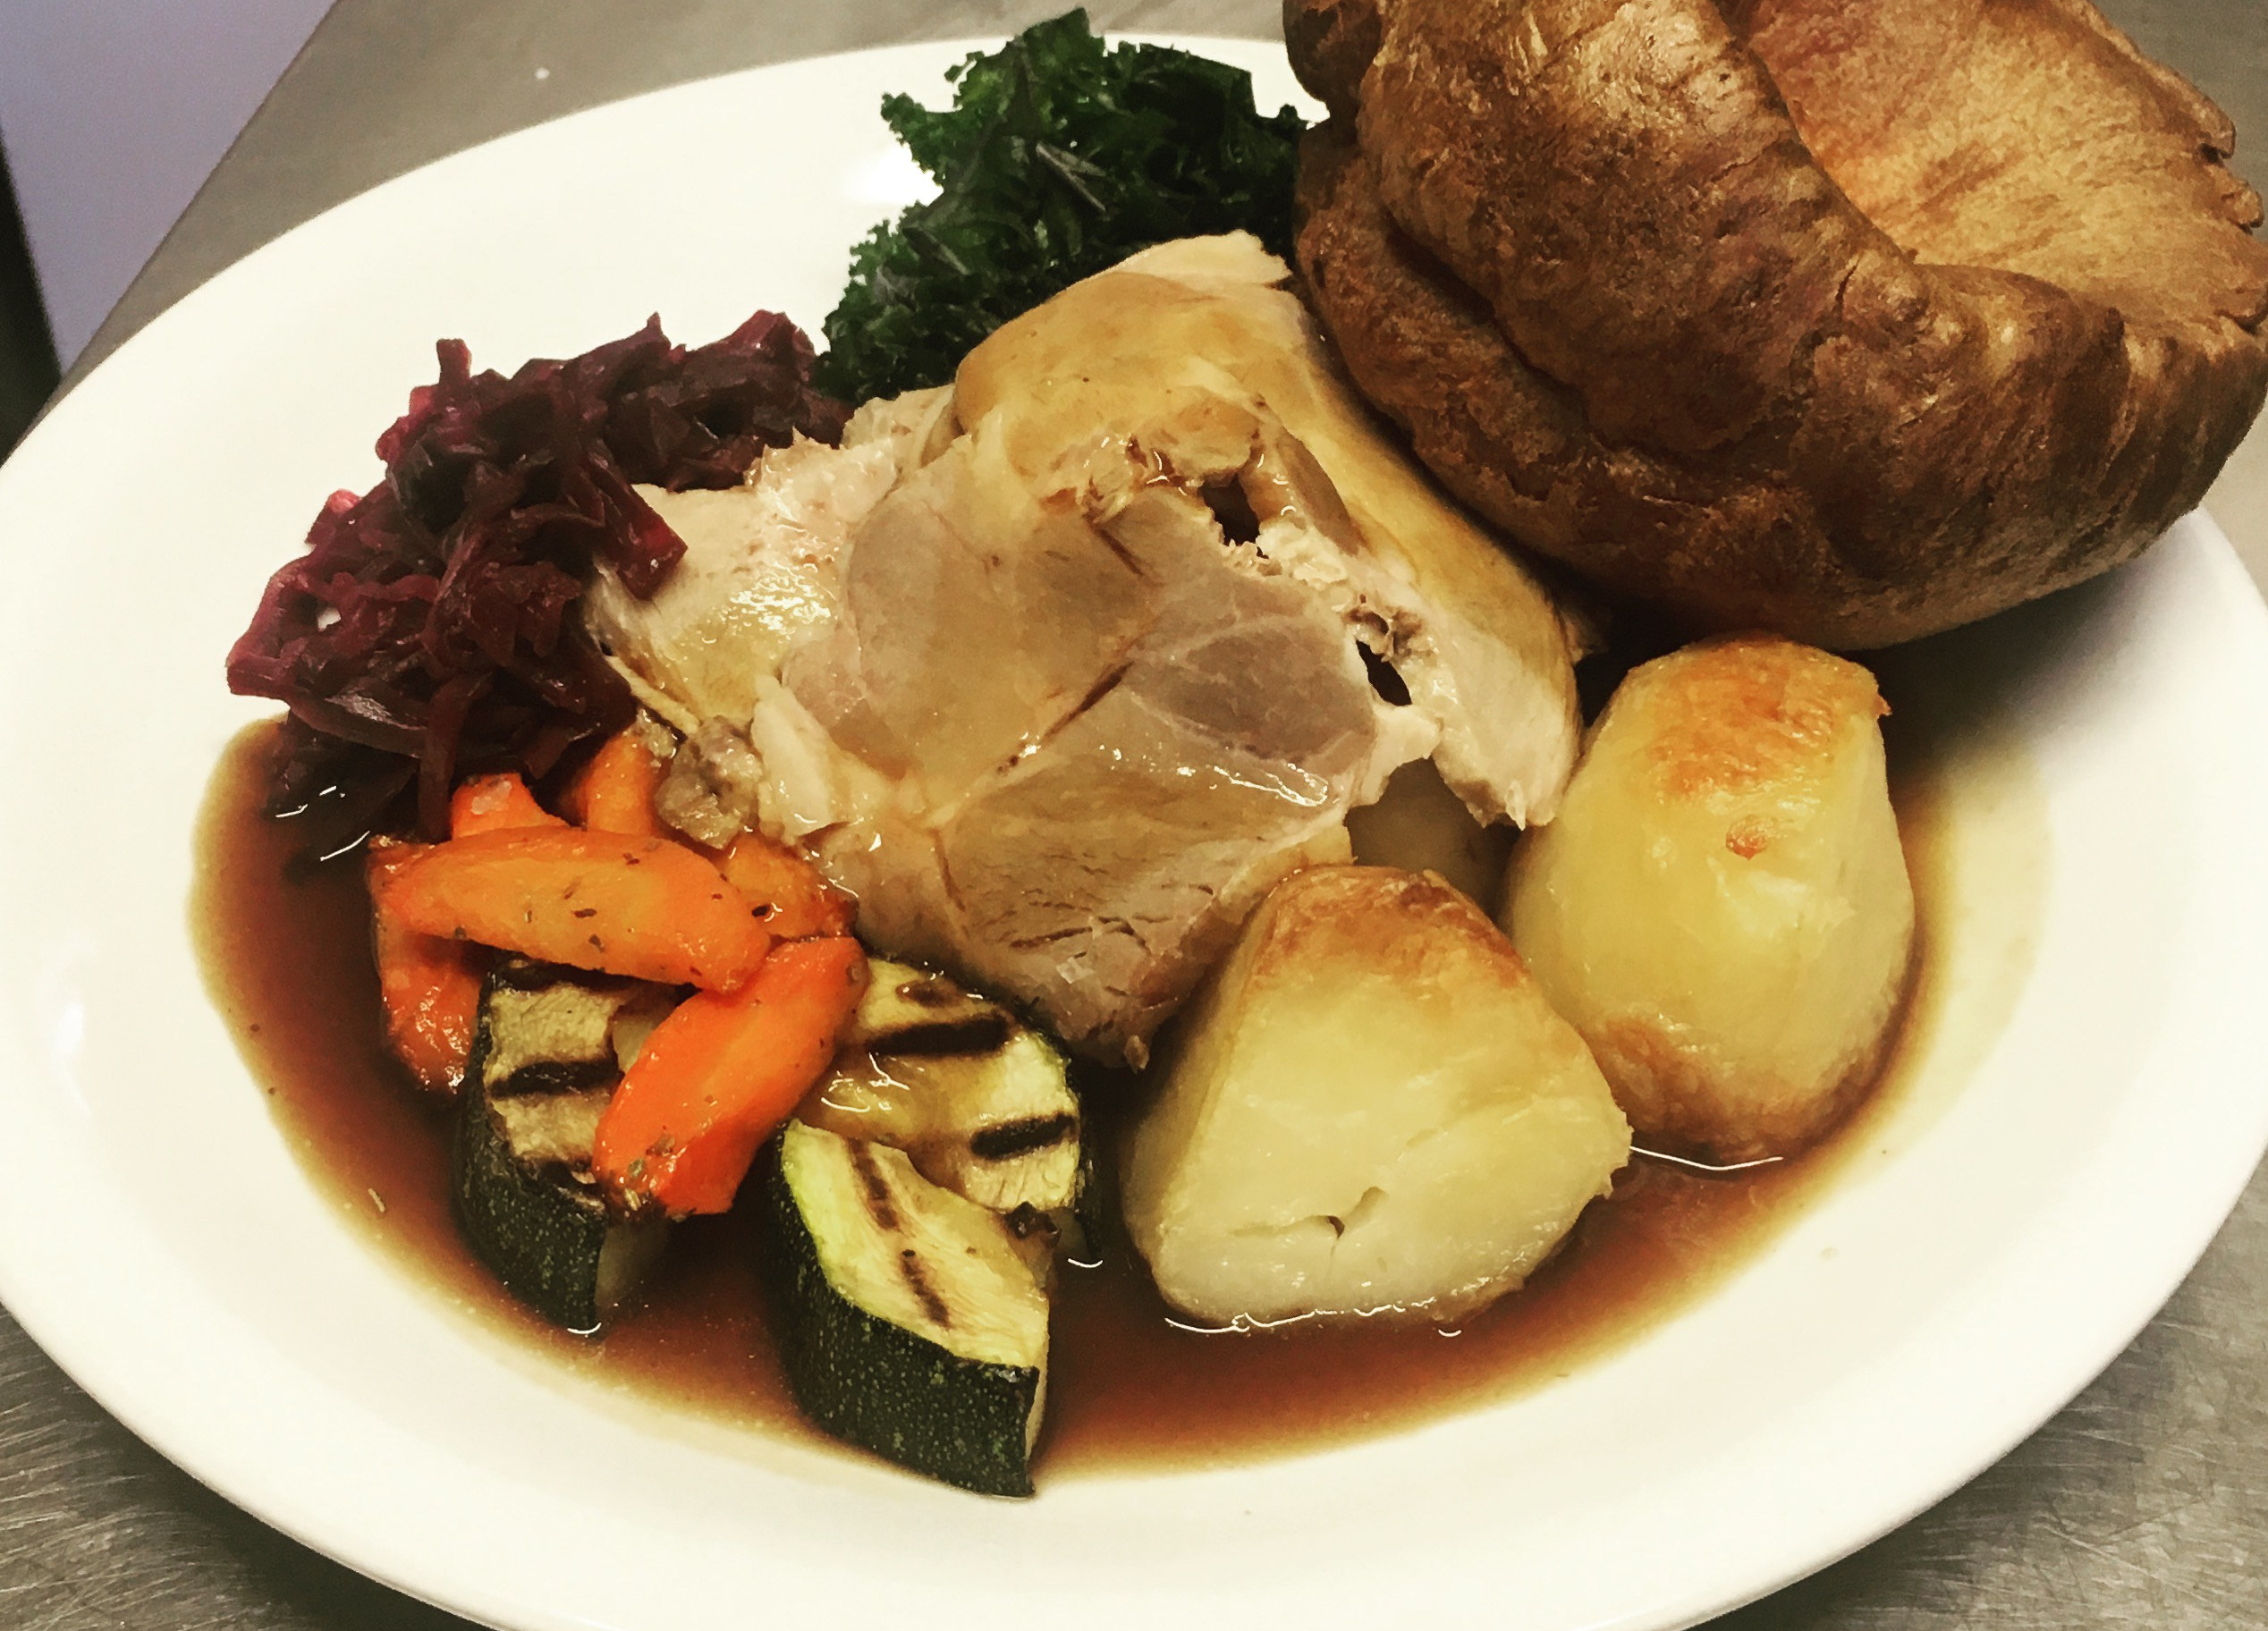 Traditional Roasts using New Forest Produce at Ringwood Railway